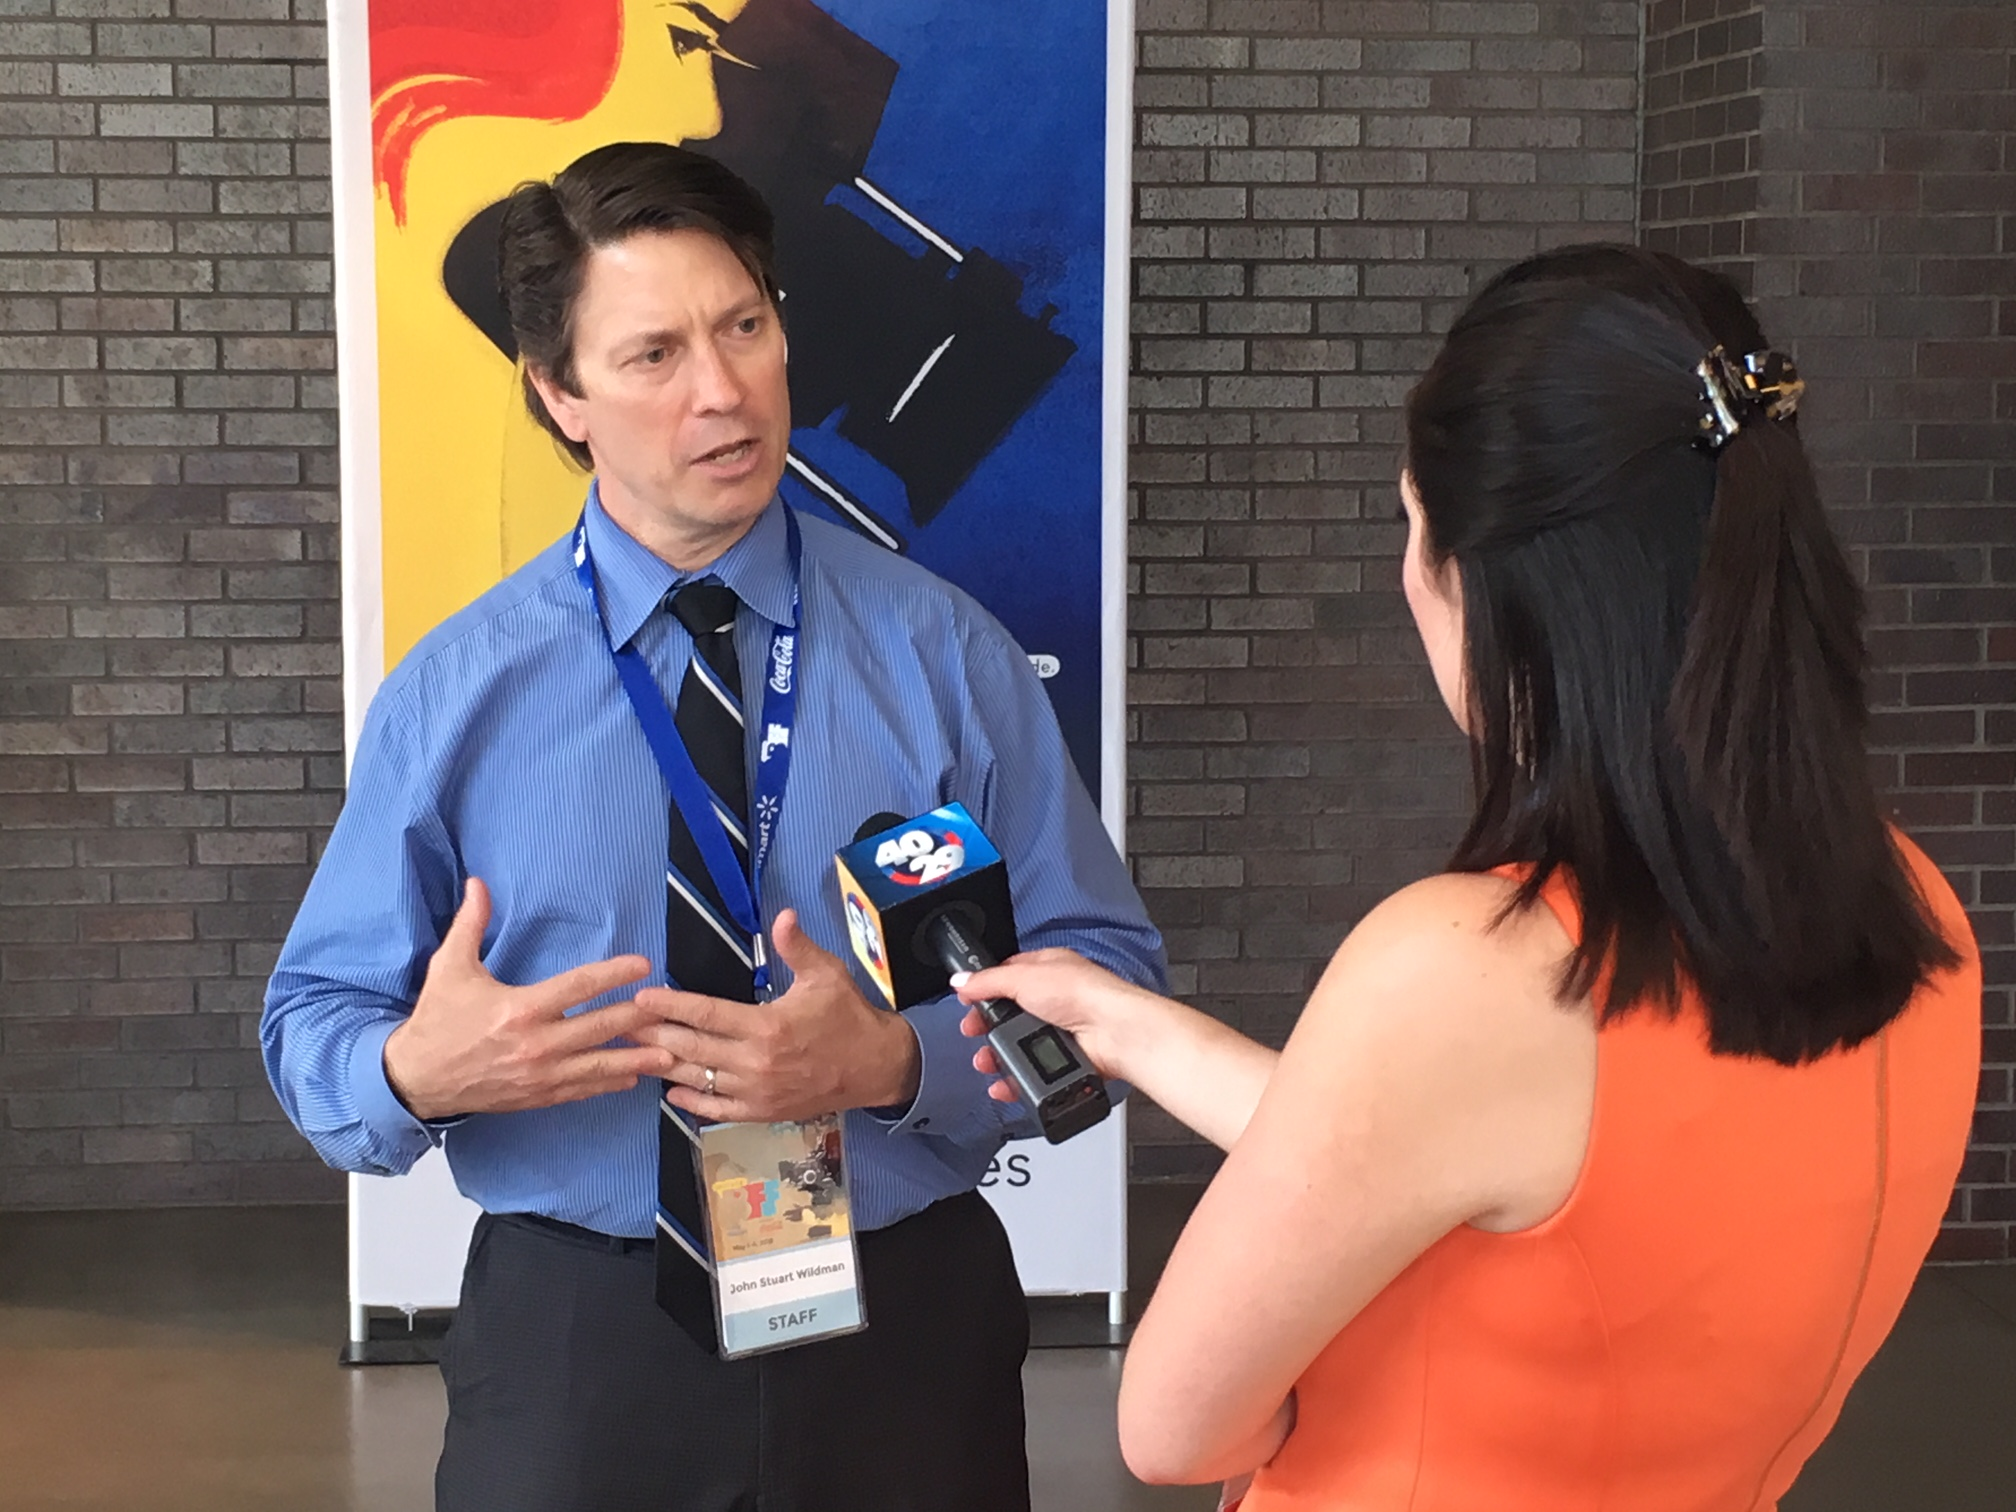 BFF 2018 - Being interviewed by KHBS_KHOG (ABC) #2 5.6.18 (Photo by Tracey Aivez).JPG